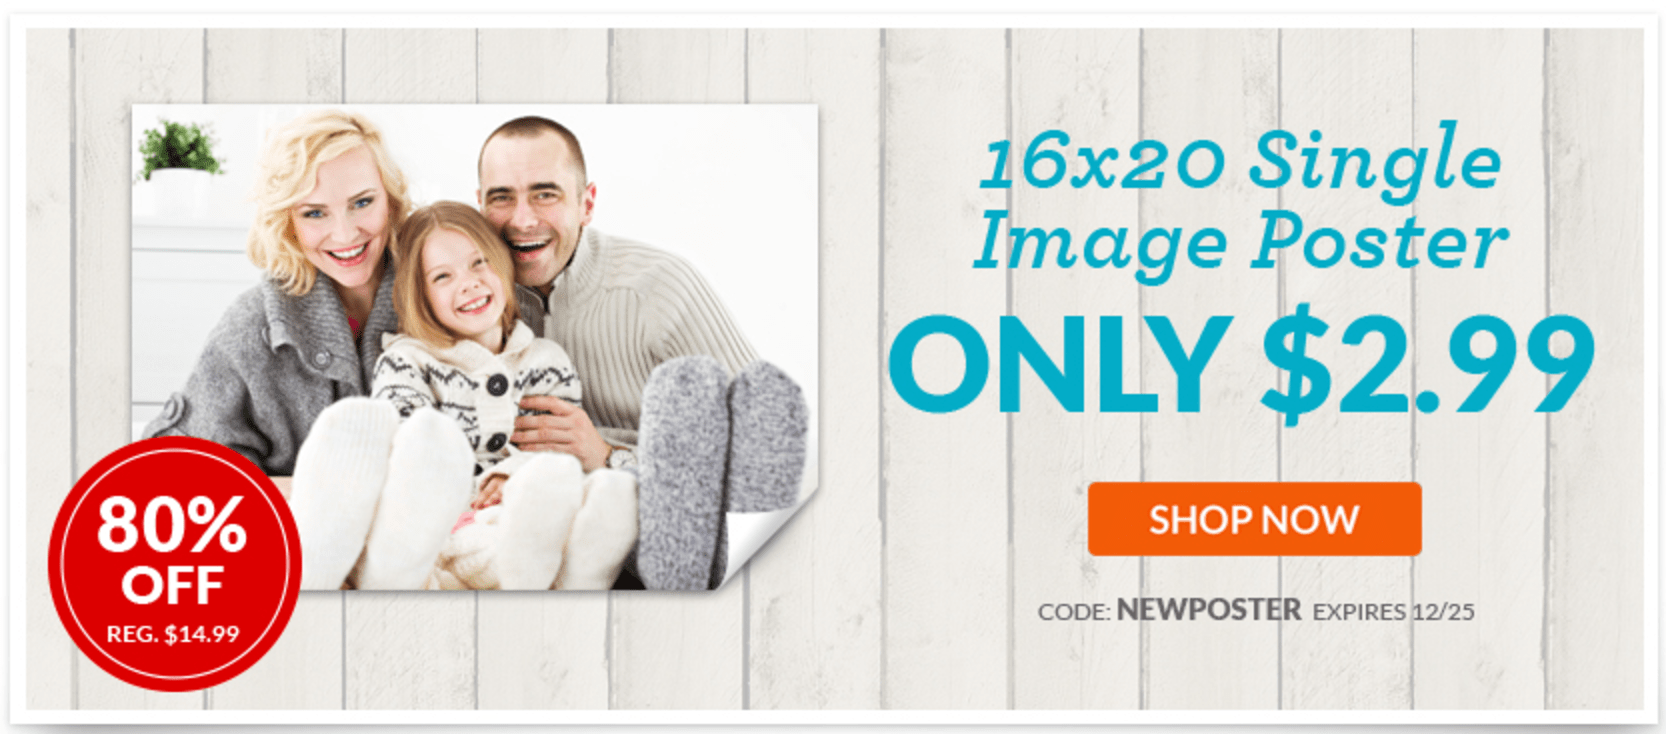 York Photo Canada Deals: Save 80% Off Personalized Posters + 50% Off Customized Holiday Cards